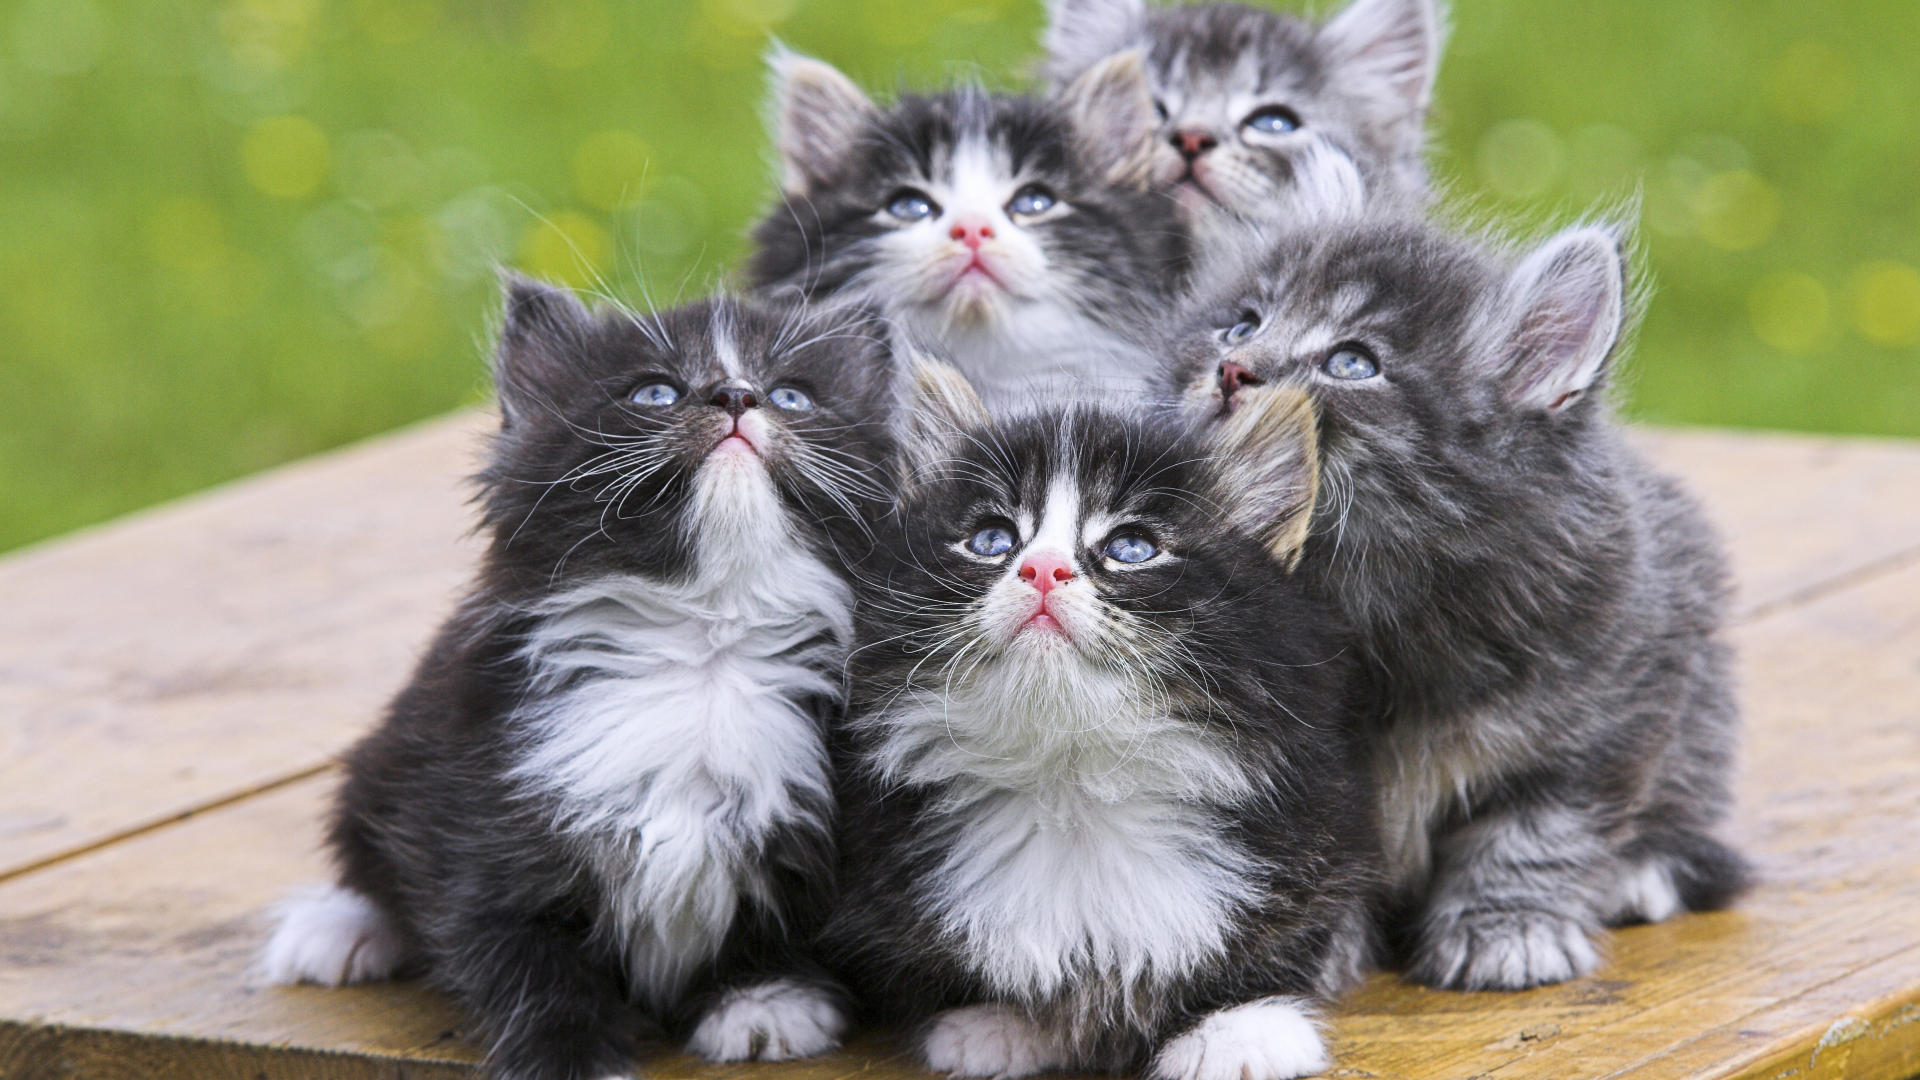 41 Very Cute Persian Kitten And